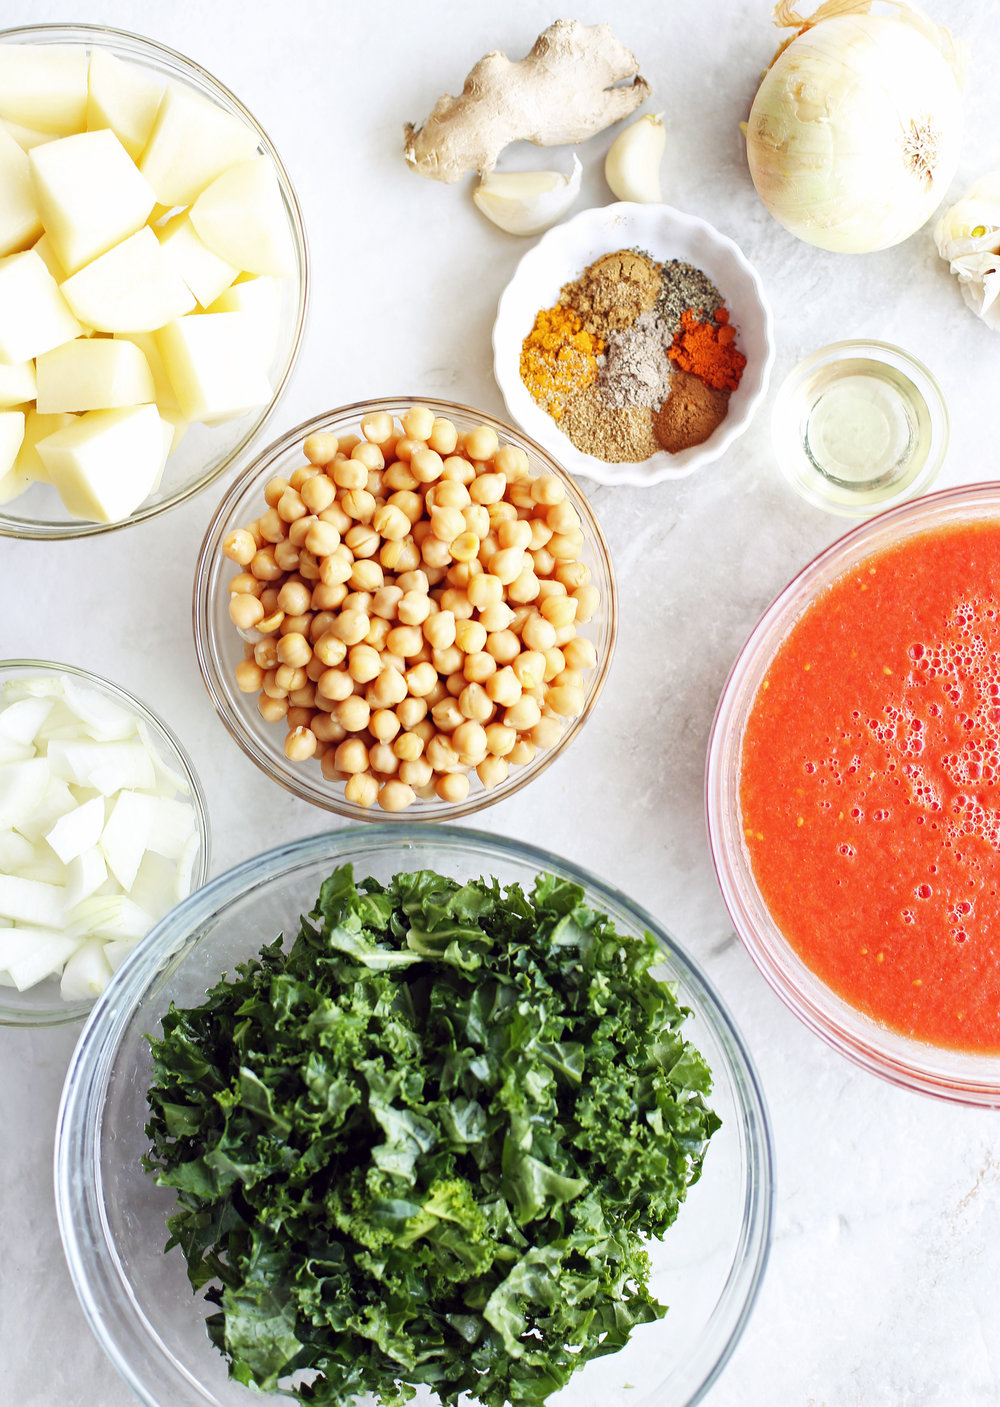 Bowls of kale, chickpeas, potatoes, onions, pureed tomatoes, spices, garlic, and onion.